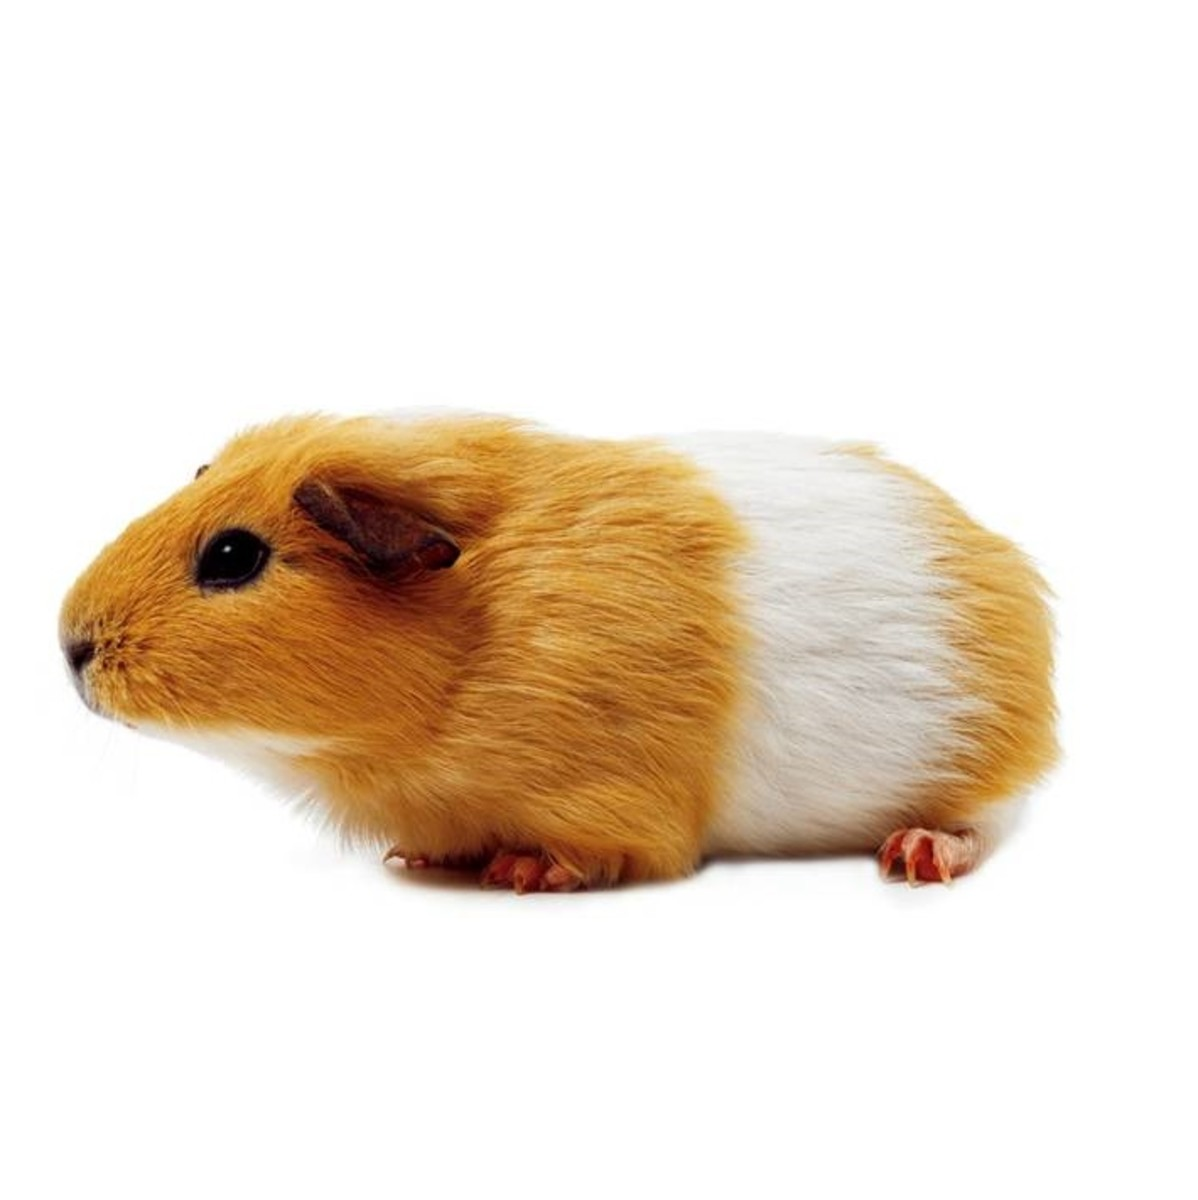 Guinea pigs are one of the most suitable small animals for a classroom pet, as long as they have access to a large pen and are fed, groomed and exercised properly.